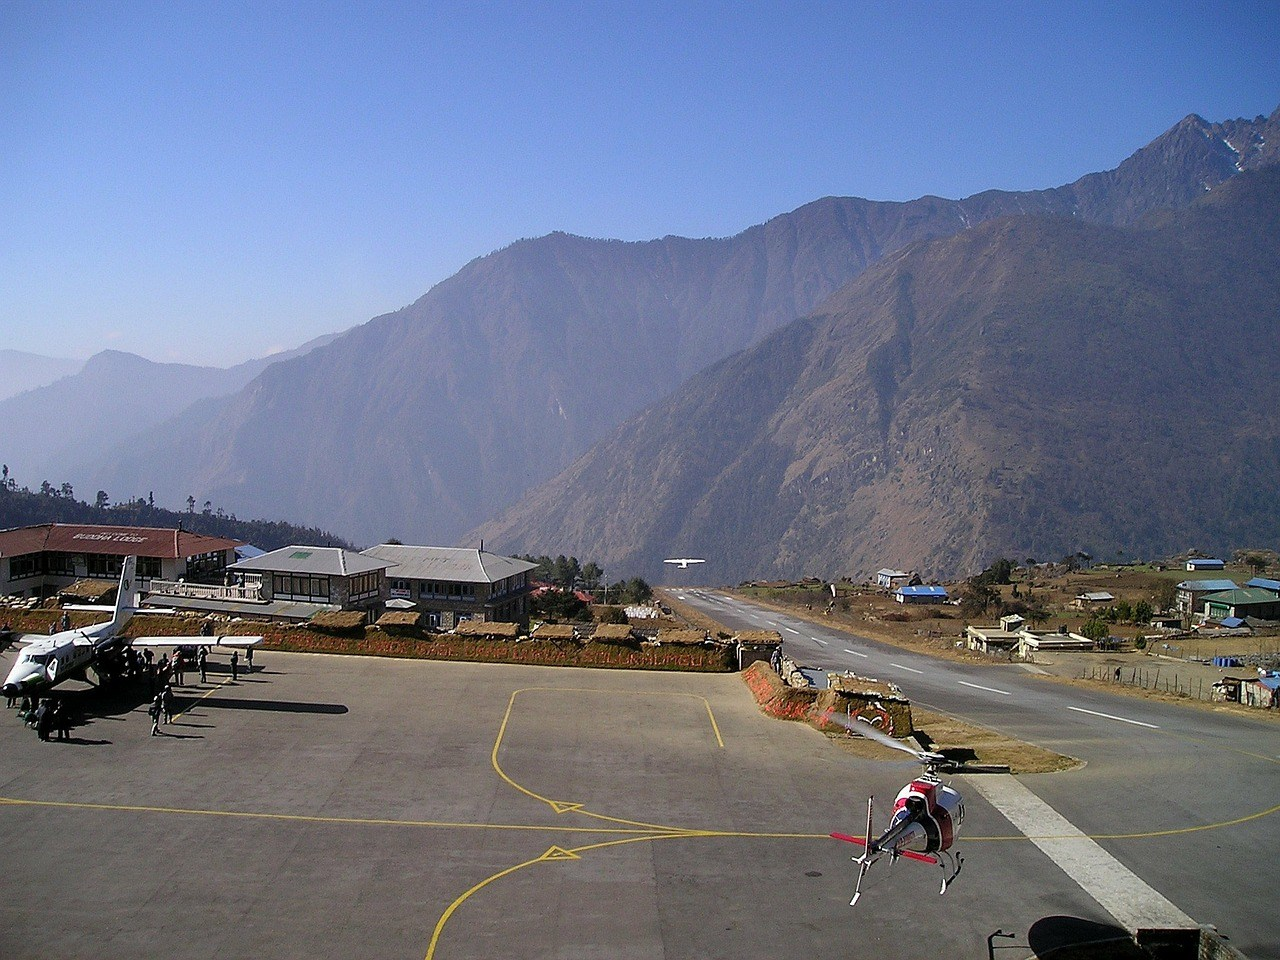 Lukla Airport Nepal - One of 7 Most beautiful Villages in Nepal for Tourism